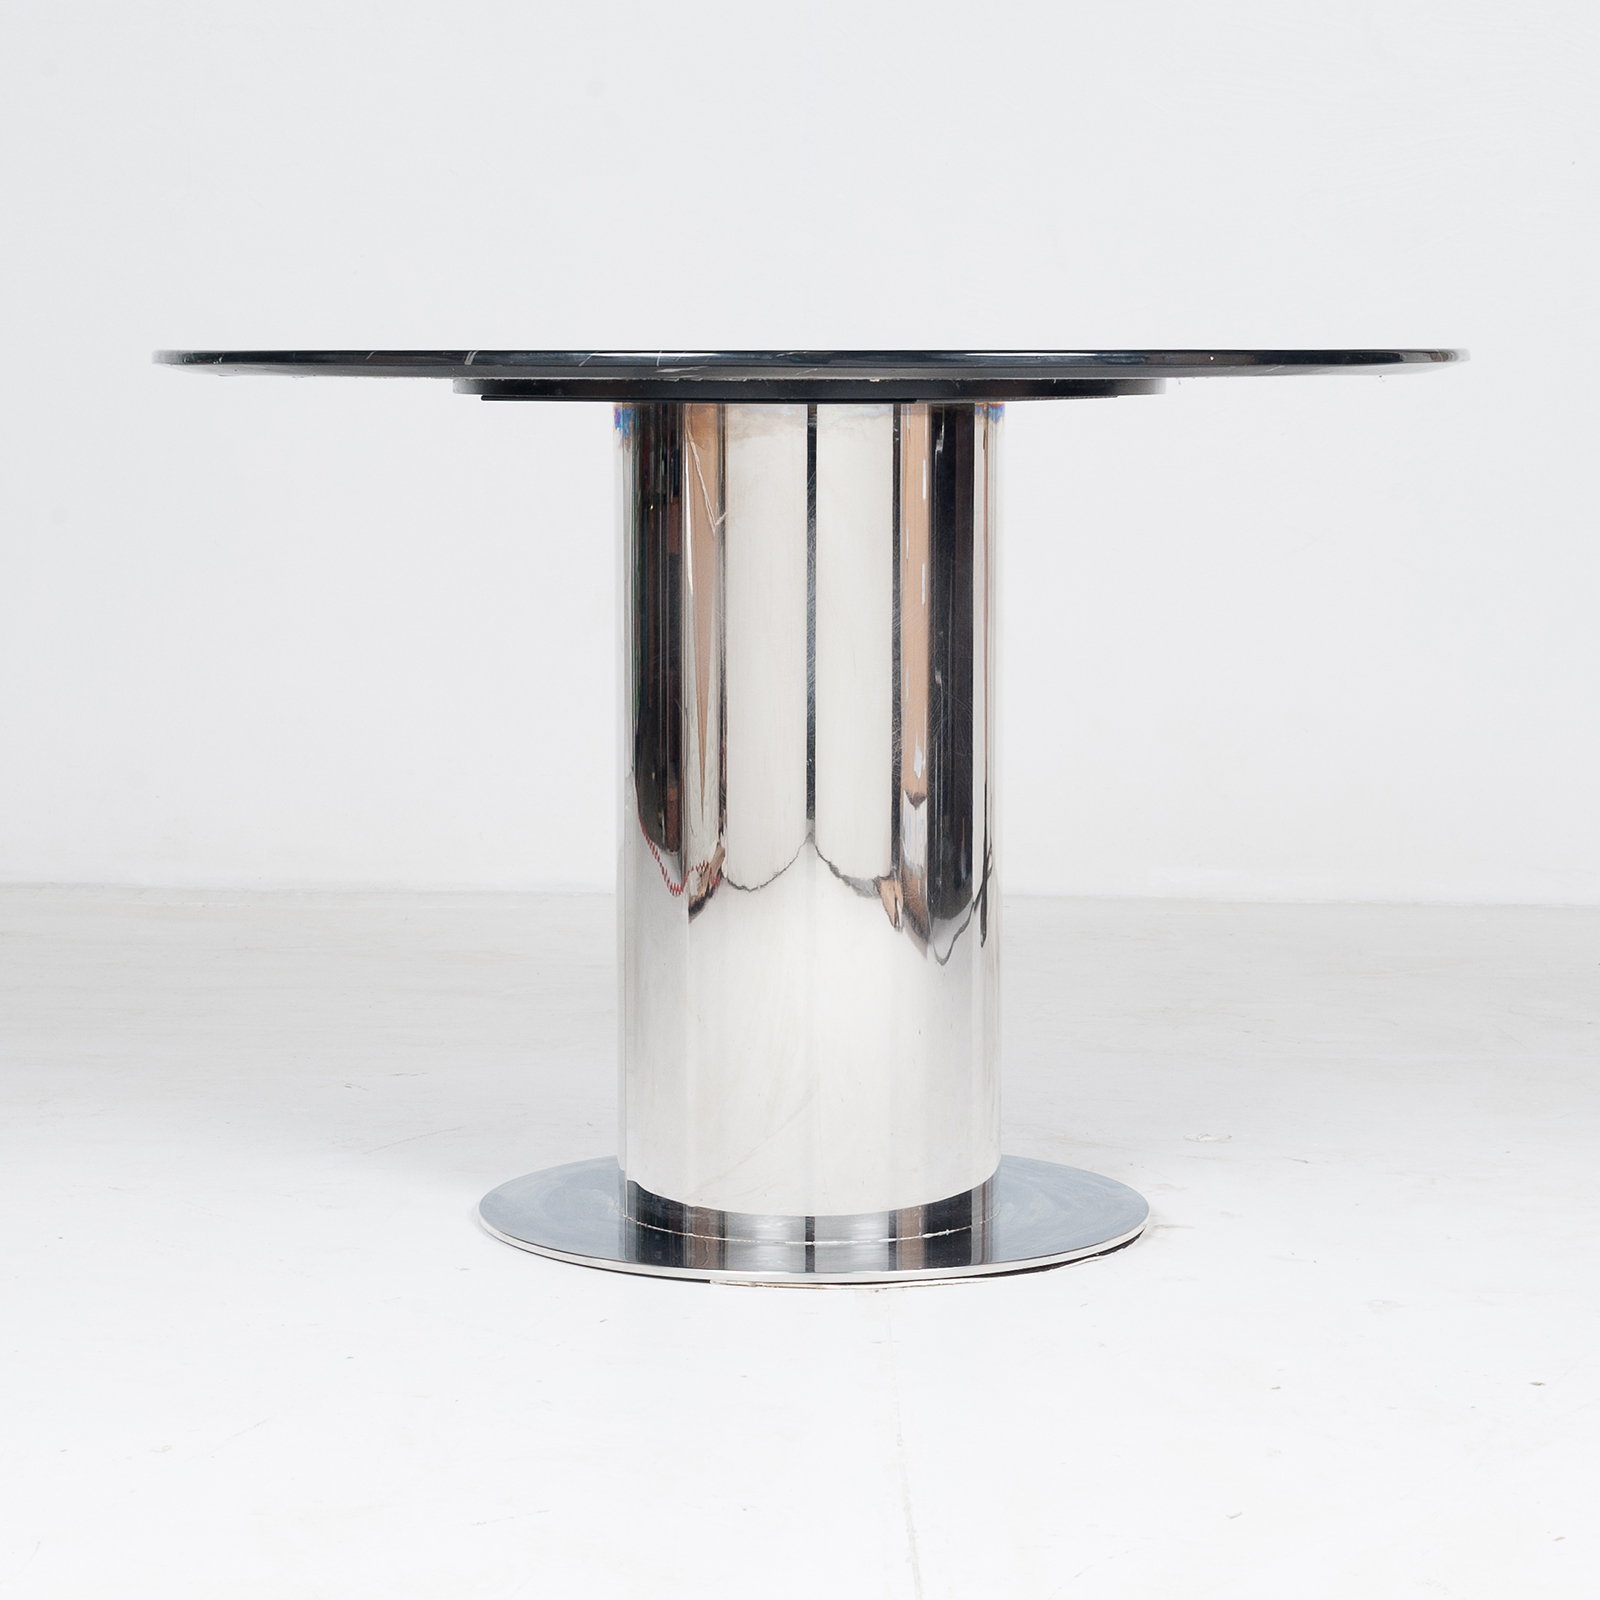 Round Dining Table With Marble Top And Chrome Base In The Style Of Ettore Sottsass, 1980s, The Netherlands 1